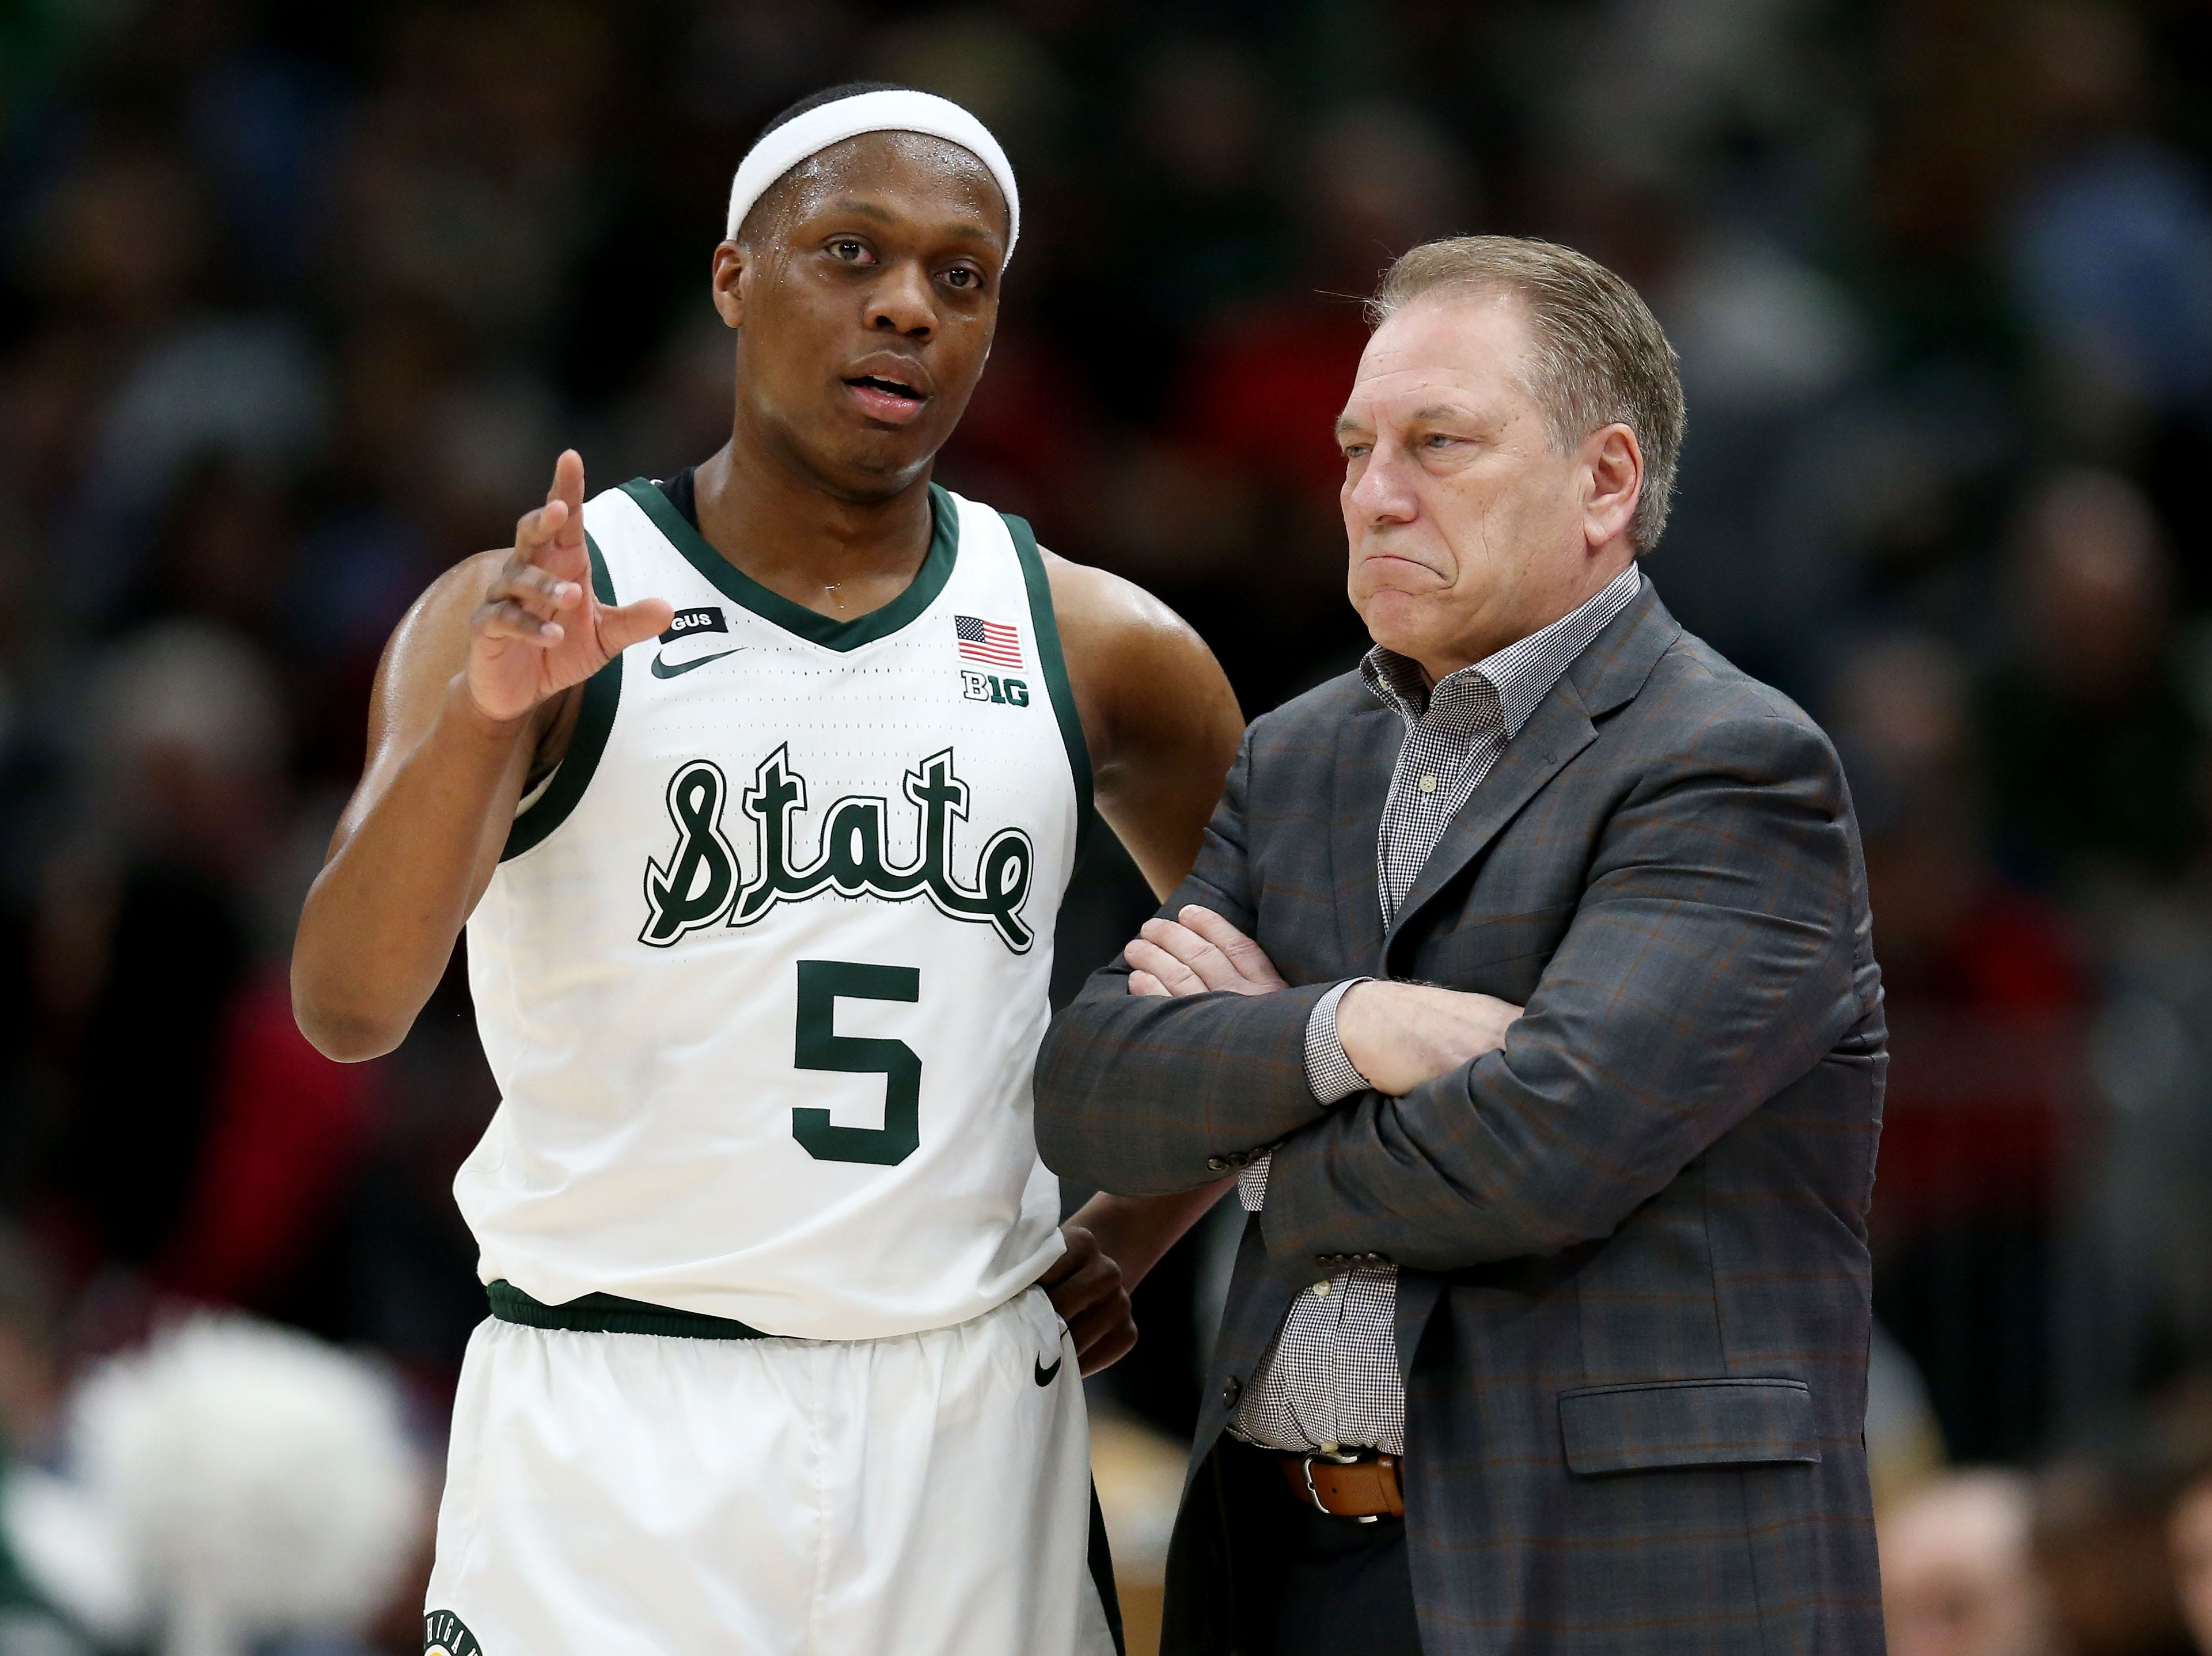 Cassius Winston #5 of the Michigan State Spartans meets with head coach Tom Izzo in the first half against the Wisconsin Badgers during the semifinals of the Big Ten Basketball Tournament at the United Center on March 16, 2019 in Chicago, Illinois.